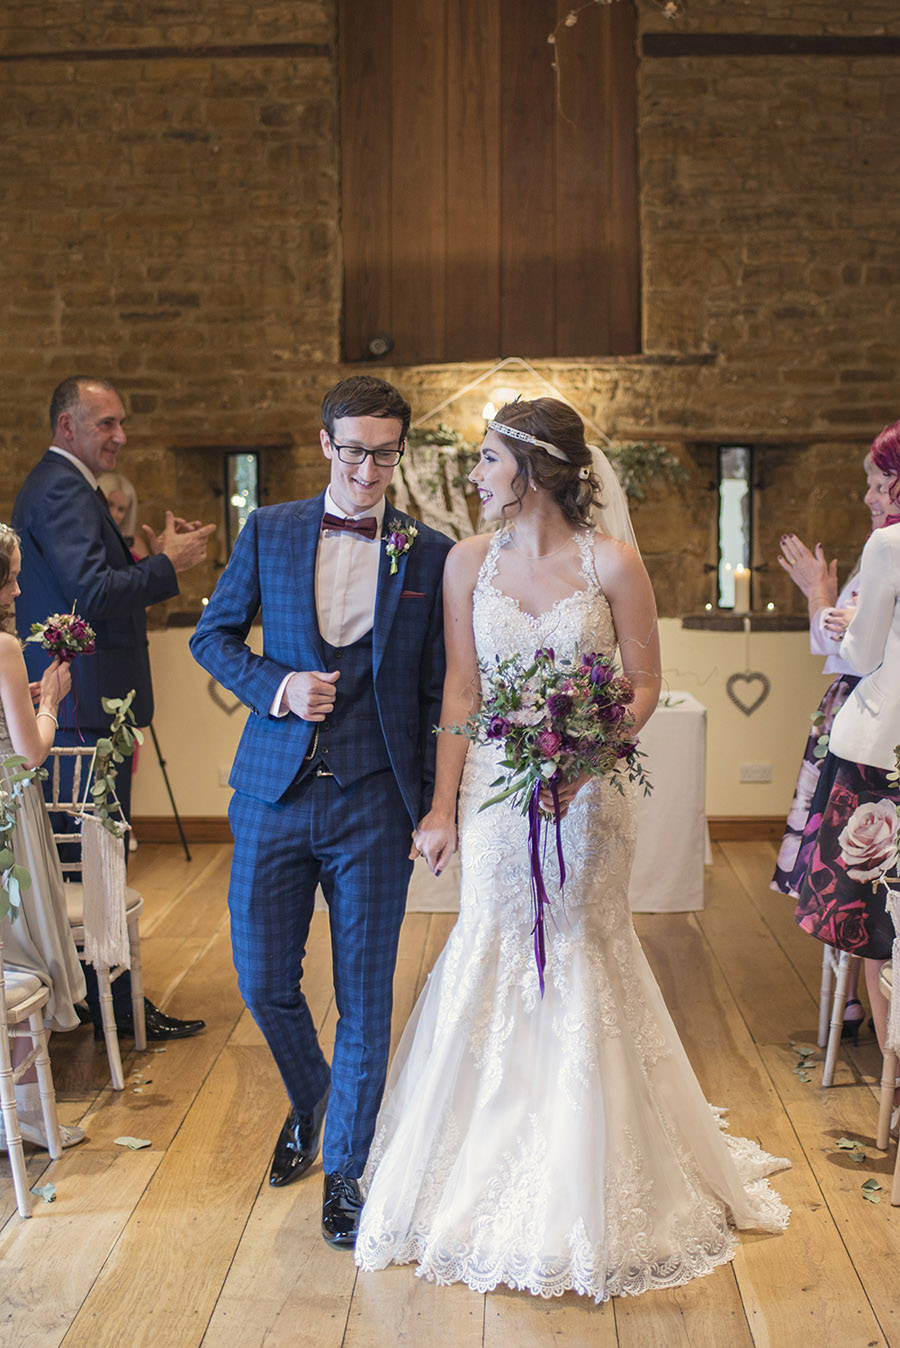 Gatsby vintage wedding at Crockwell Farm, images by Jodie Cooling Photography (13)